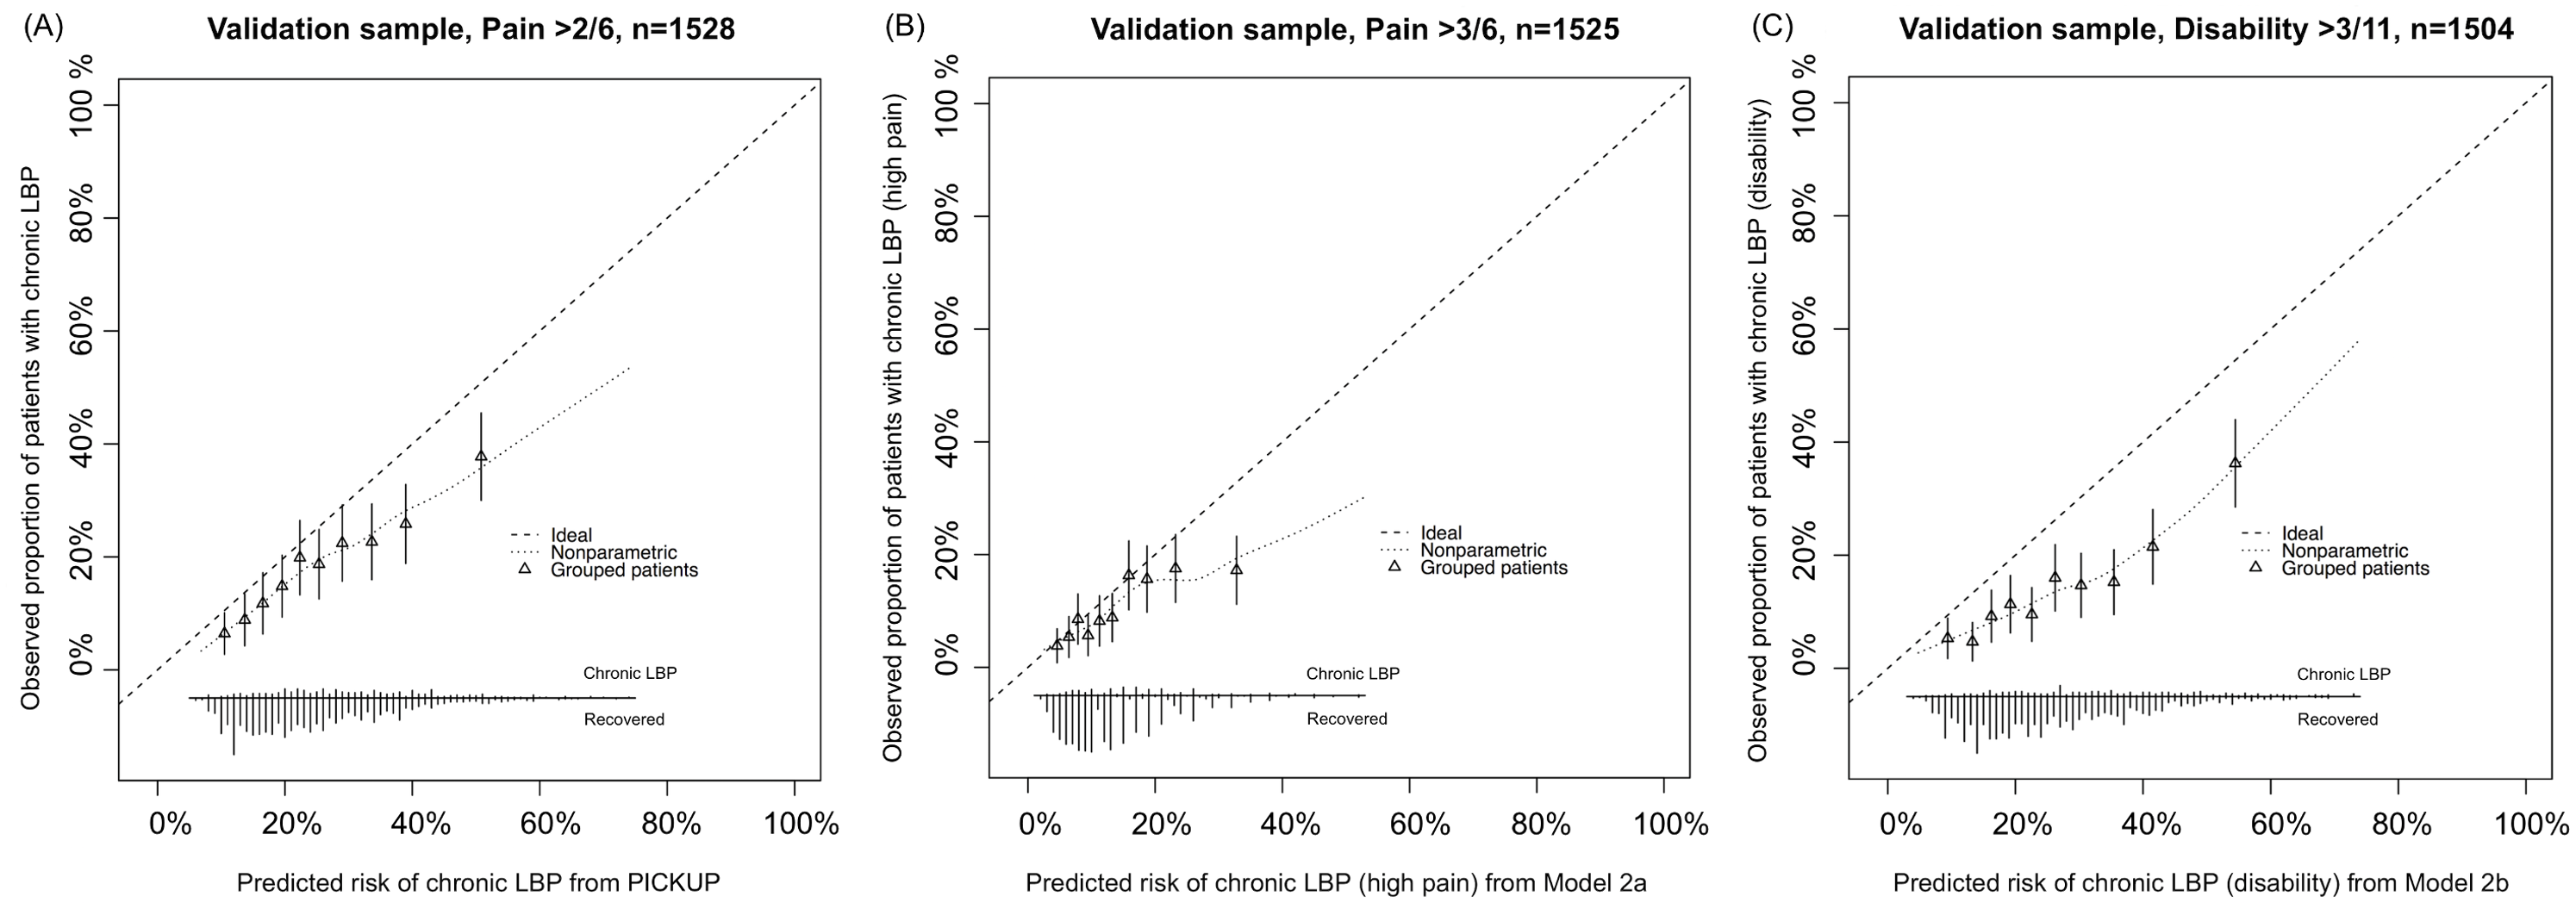 Calibration plots showing external validity of the three prognostic models.